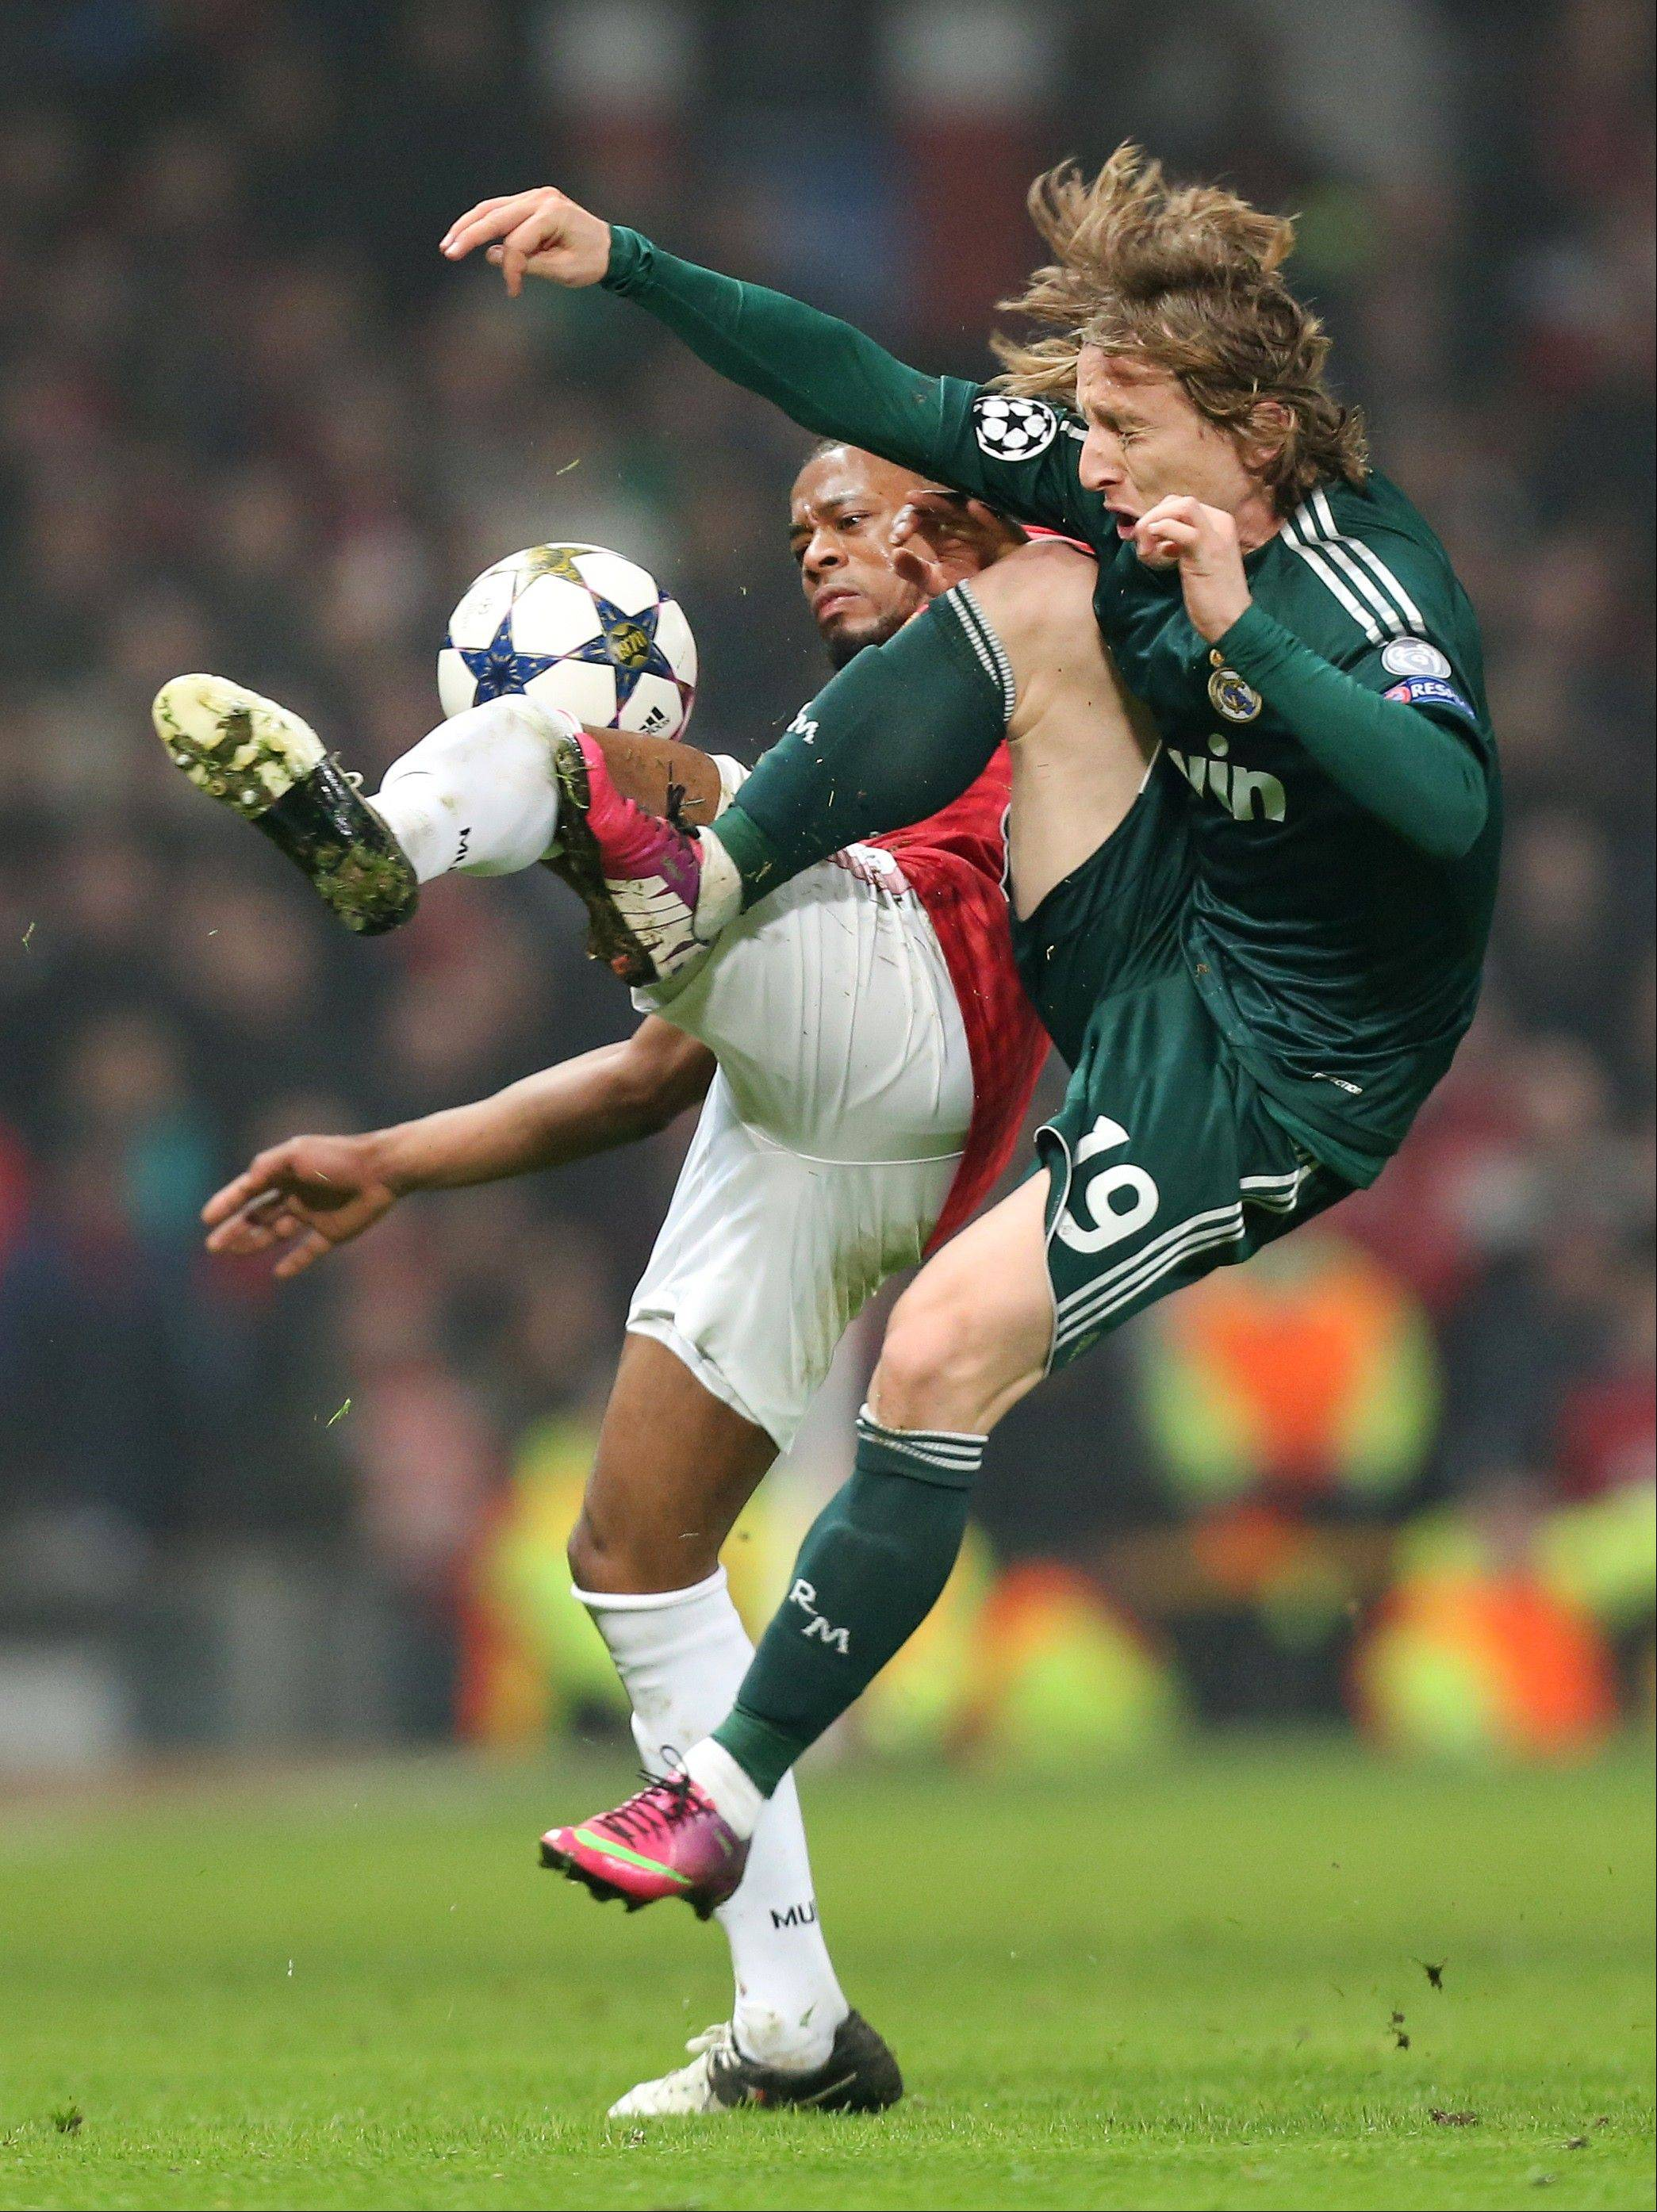 Manchester United's Patrice Evra, rear, challenges Real Madrid's Luka Modric from Croatia during their Champions League round of 16 soccer match at Old Trafford Stadium, Manchester, England, Tuesday, March 5, 2013.